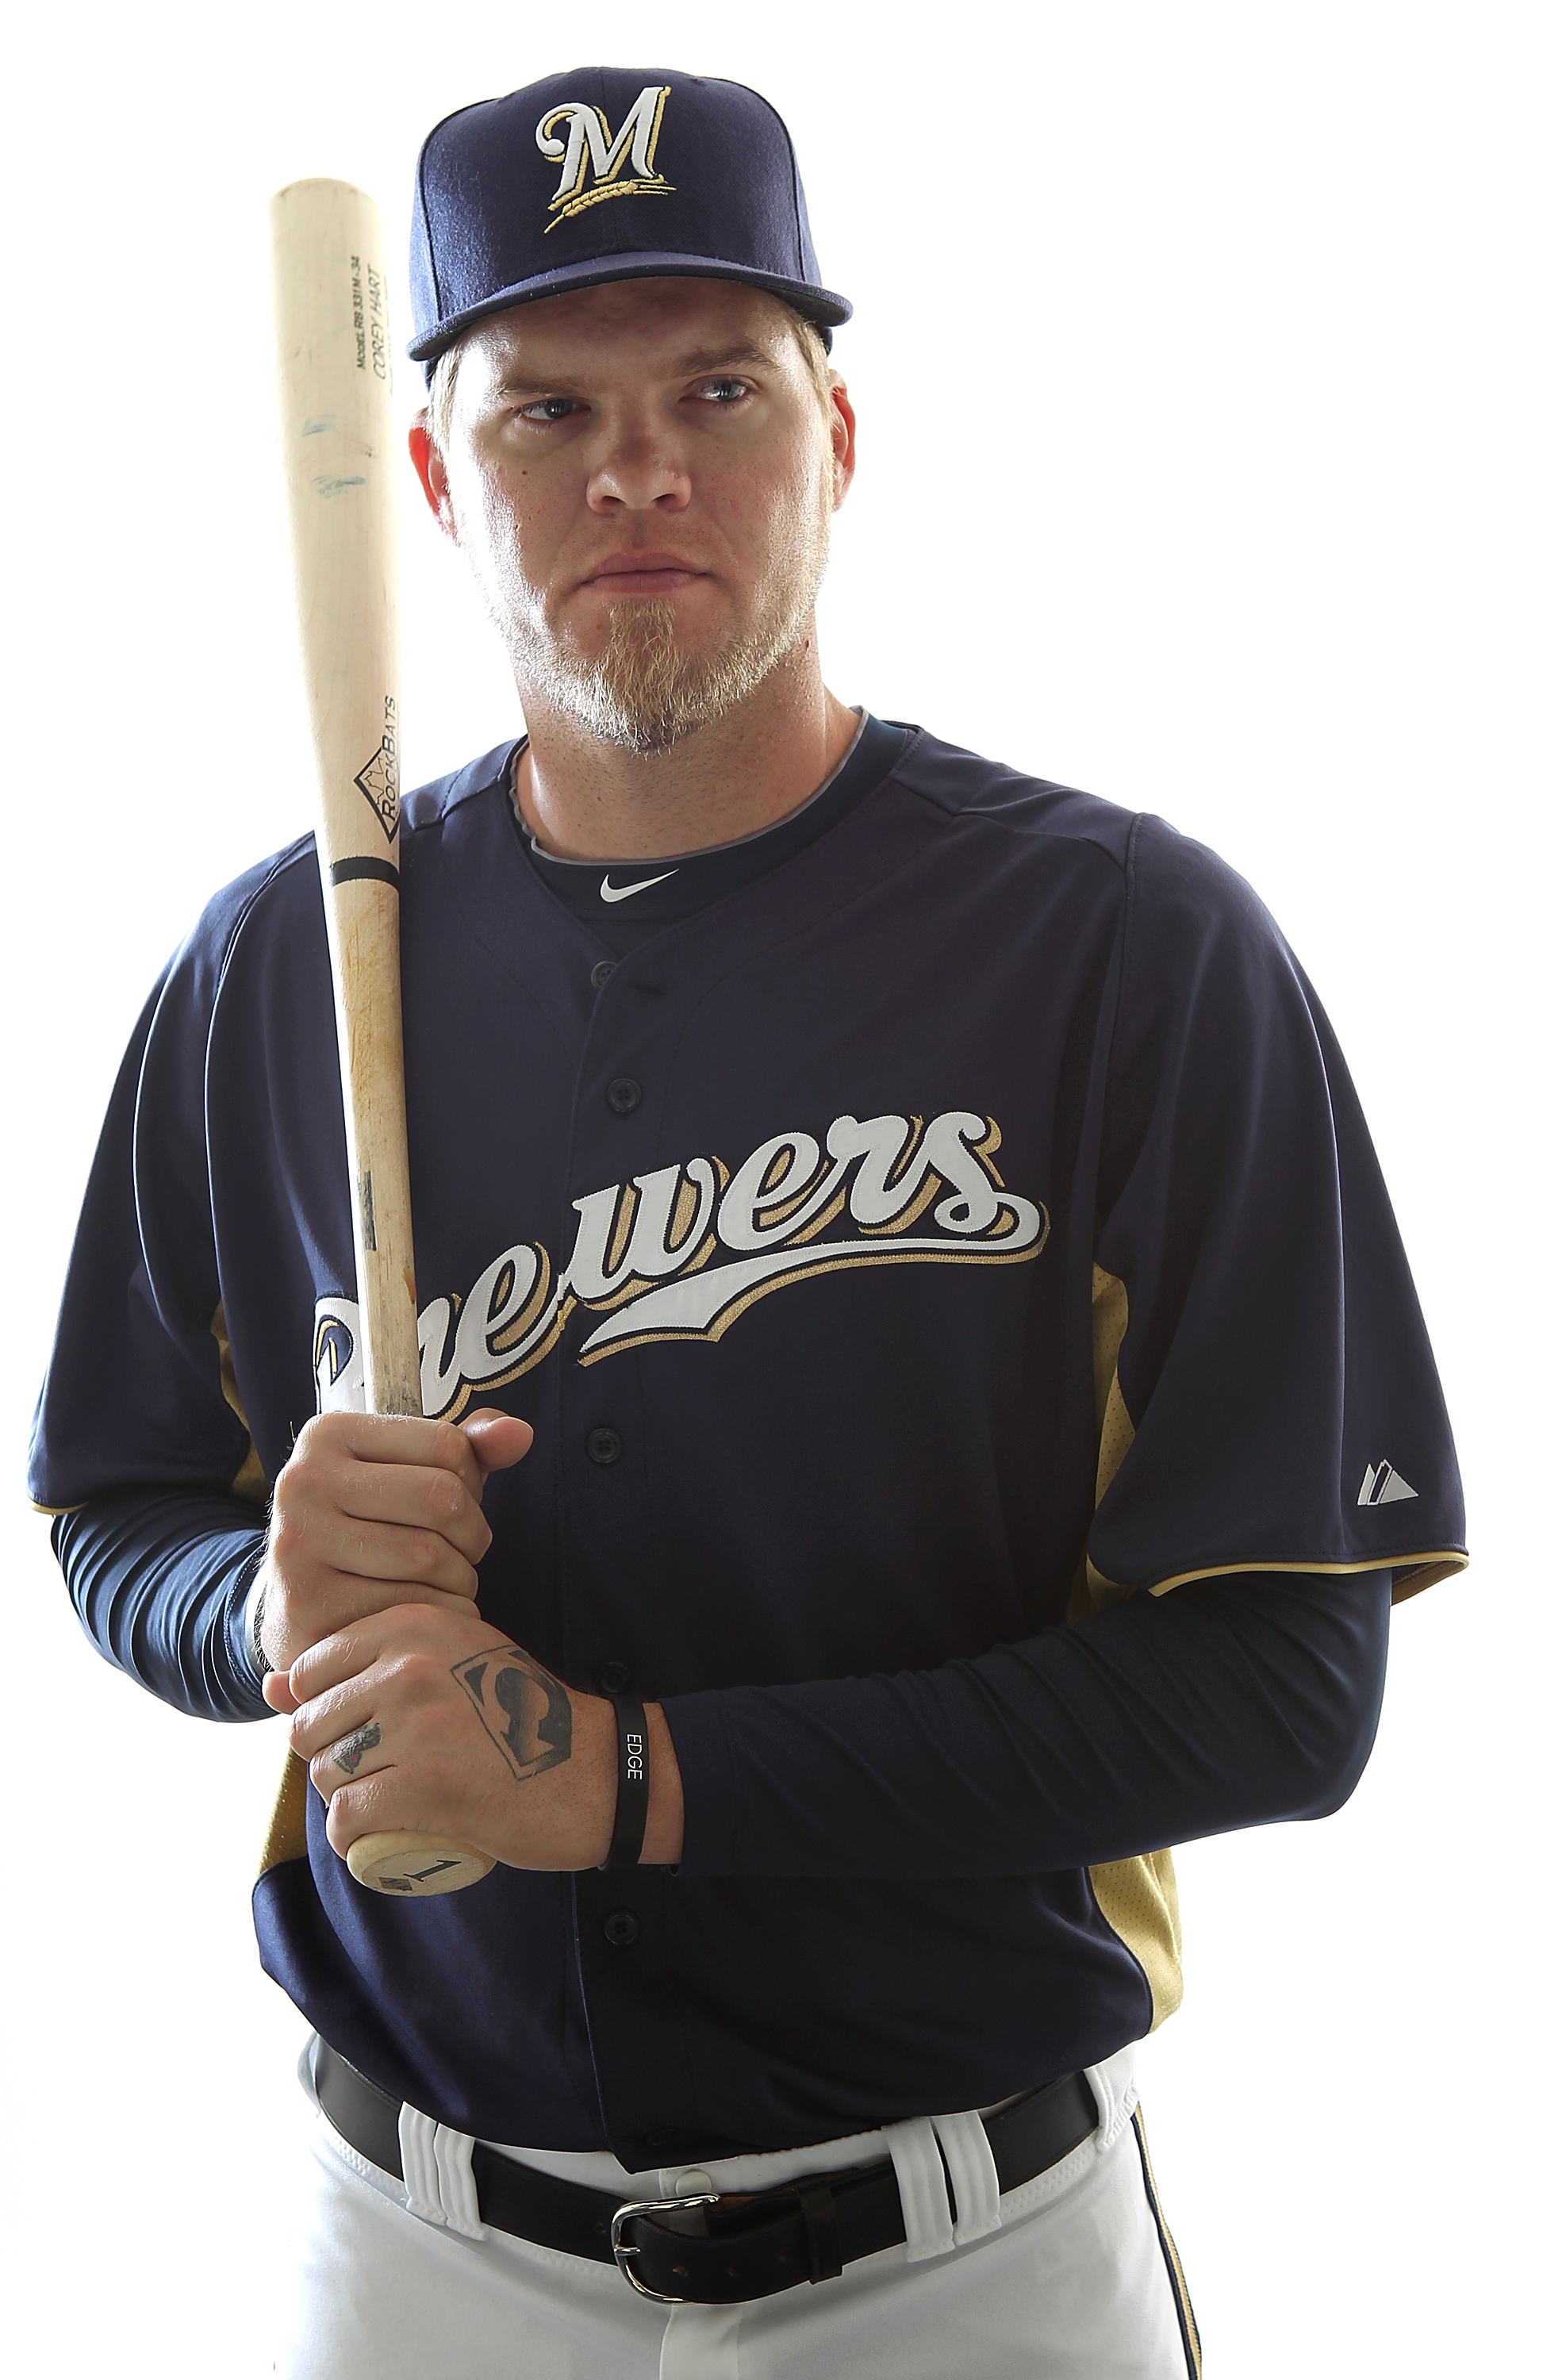 MARYVALE, AZ - FEBRUARY 24:  Corey Hart #1 of the Milwaukee Brewers poses for a portrait during Spring Training Media Day on February 24, 2011 at Maryvale Stadium in Maryvale, Arizona.  (Photo by Jonathan Ferrey/Getty Images)